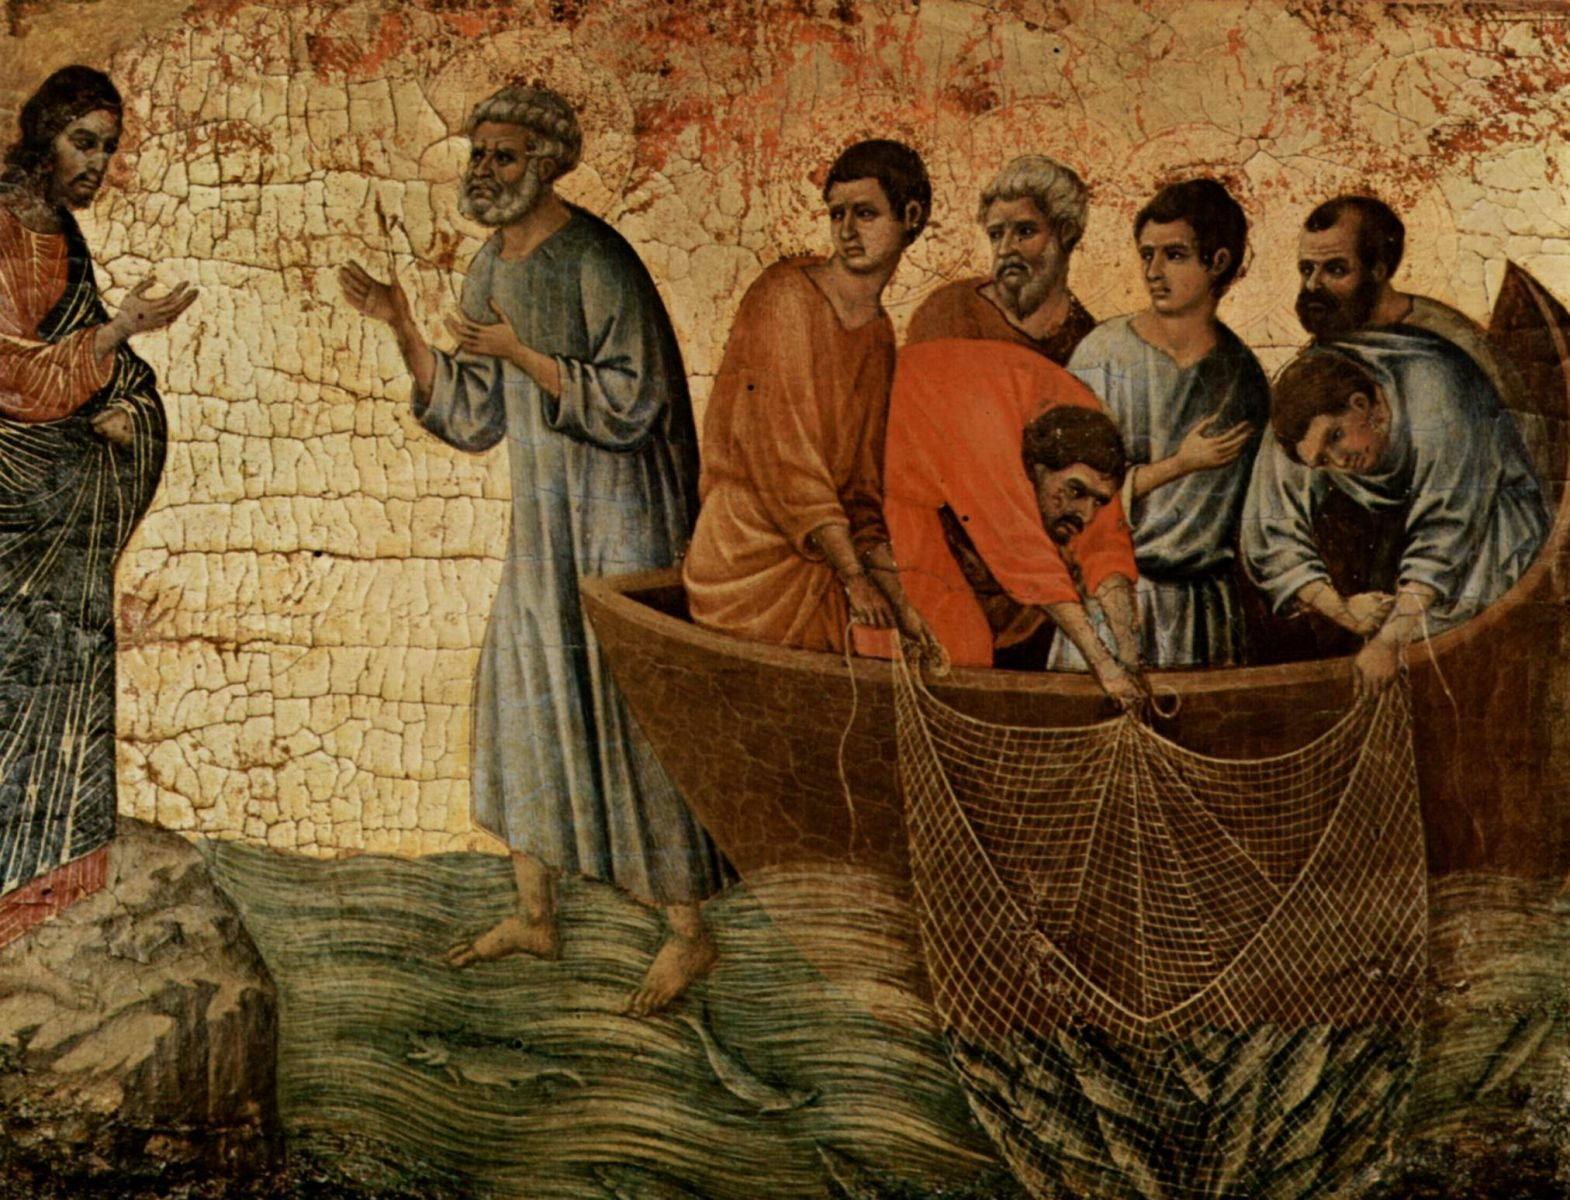 Duccio resurection